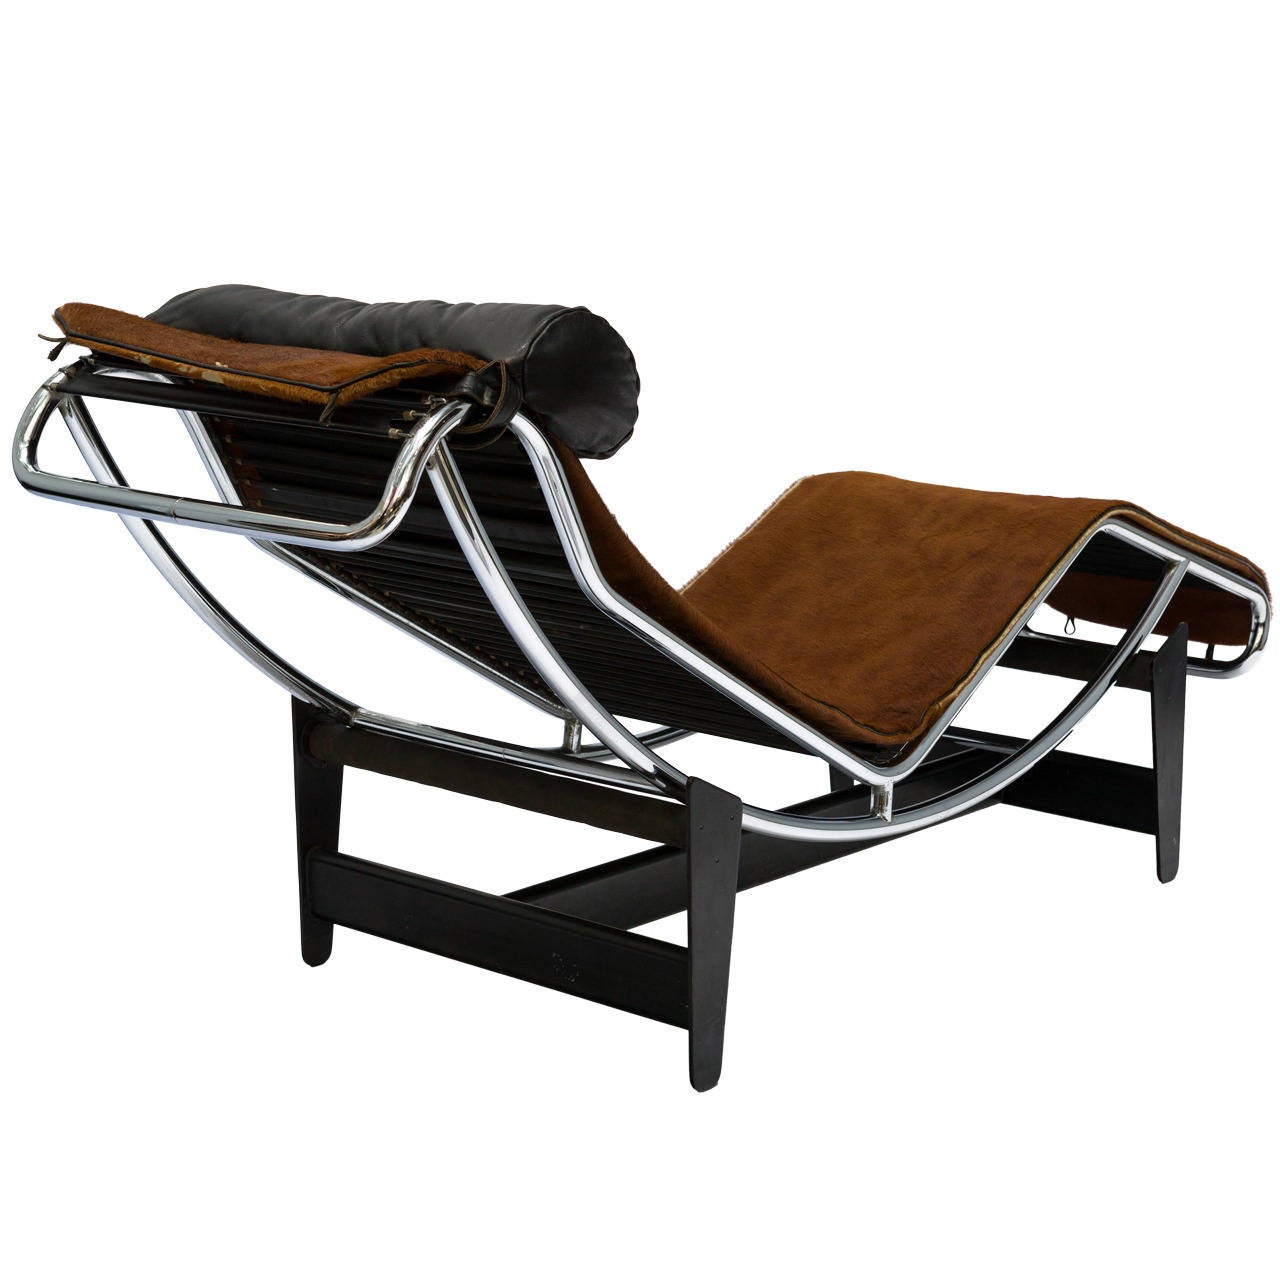 Le corbusier chair vintage - Le Corbusier Lc4 Chaise Lounge Chair In Cowhide 1